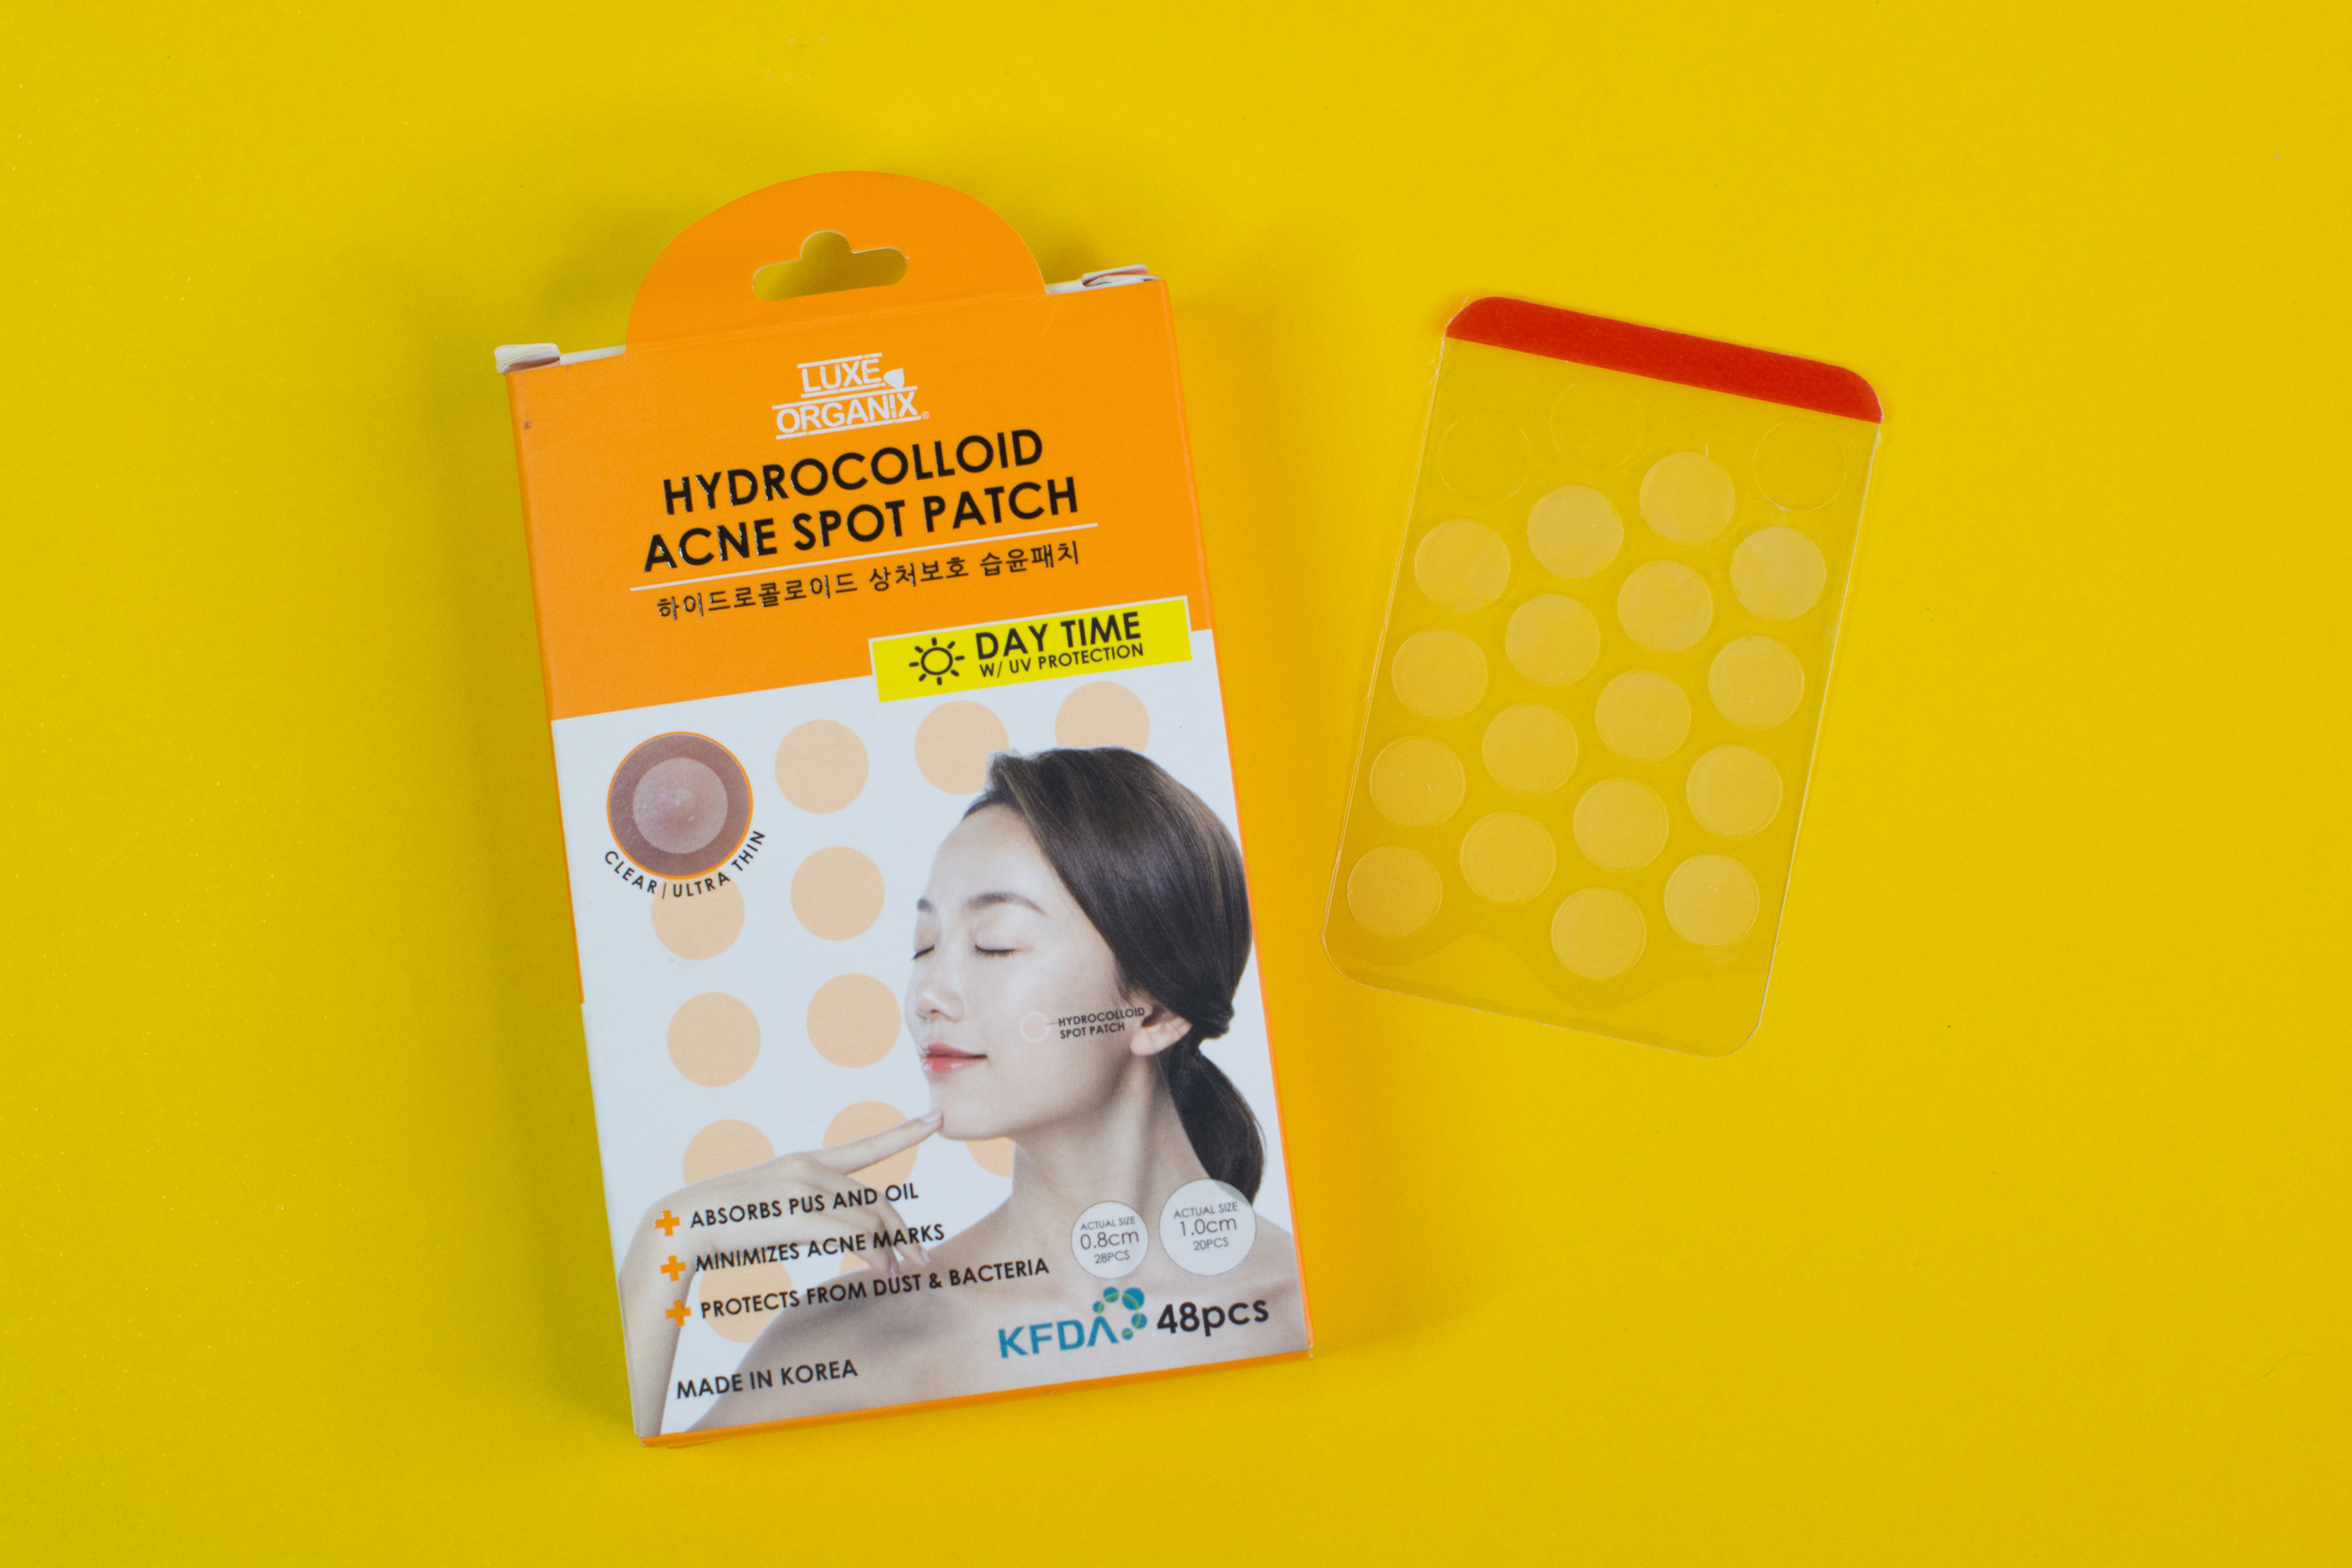 pimple-patch-battle_cosrx_happy-skin_vitacare_luxe-organics_mediheal_review-philippines_2019-8.JPG